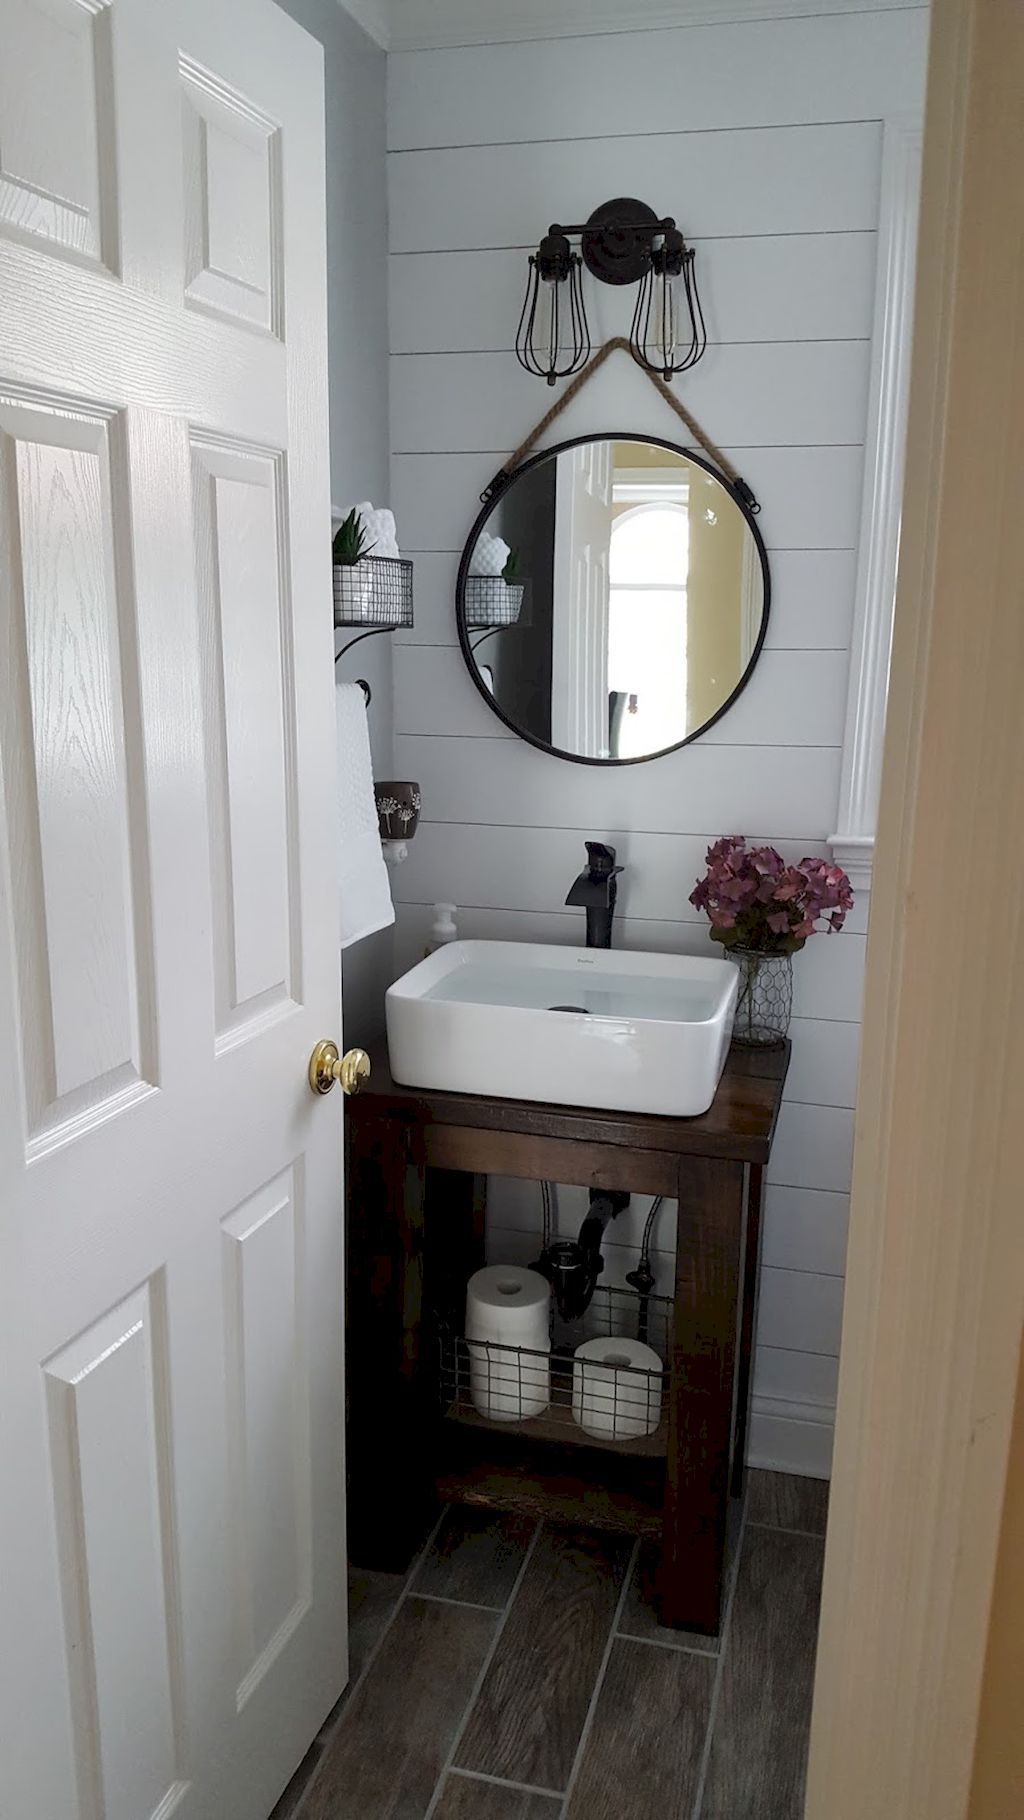 80 fresh and cool small bathroom remodel and decor ideas | small